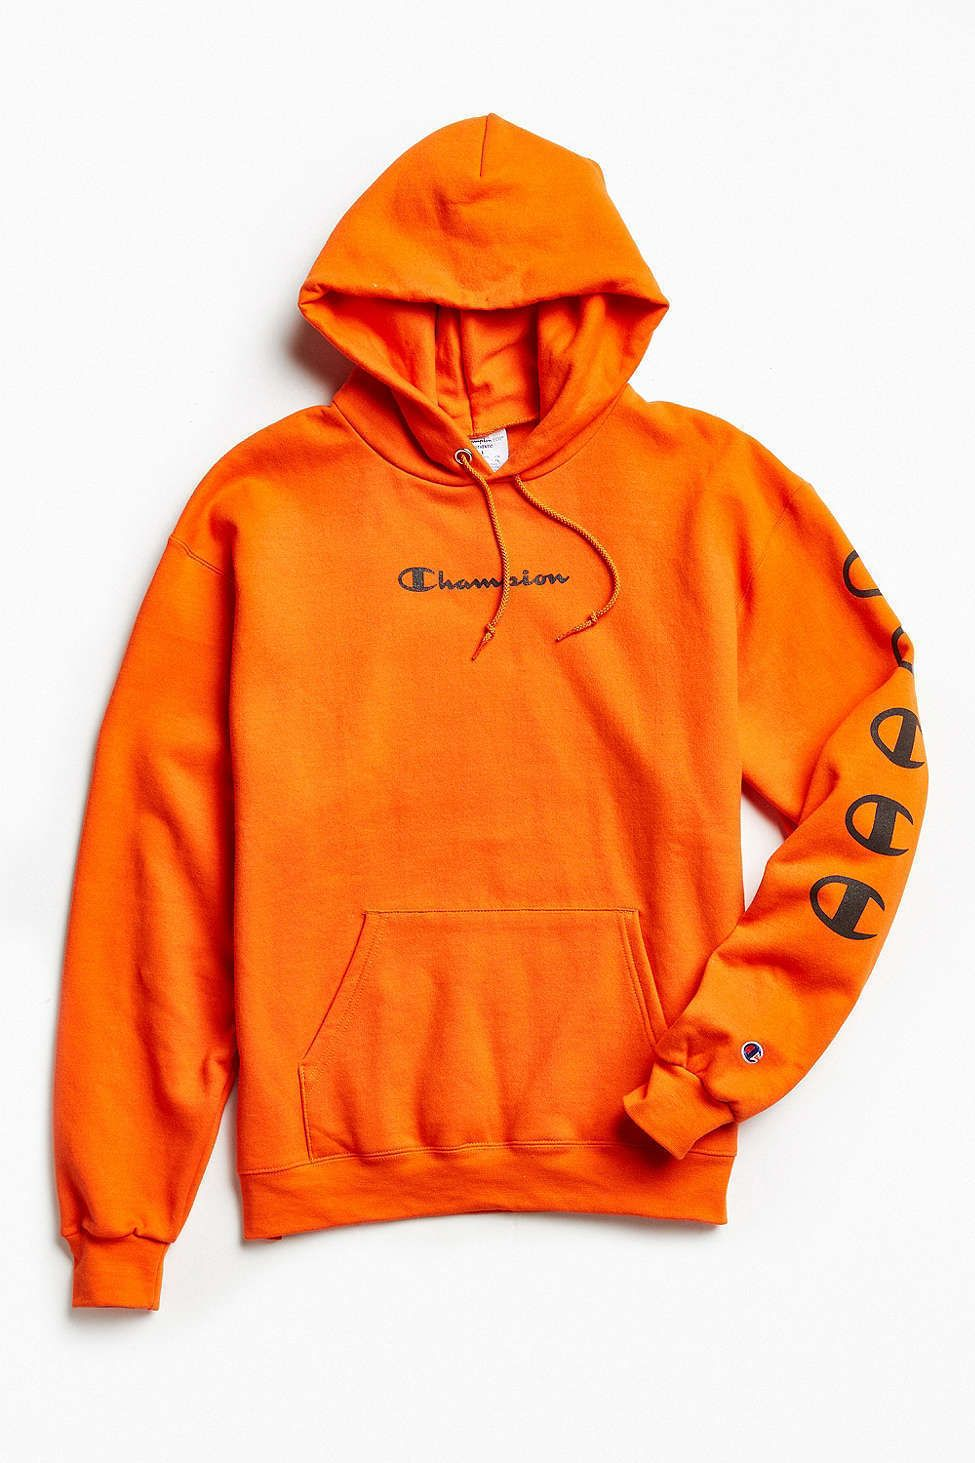 Staff 2018 New Cotton Orange Letter Kanye West Purpose Hip Hop Skateboard Hoodies Men Full High Street Sweatshirts London Hoodies & Sweatshirts